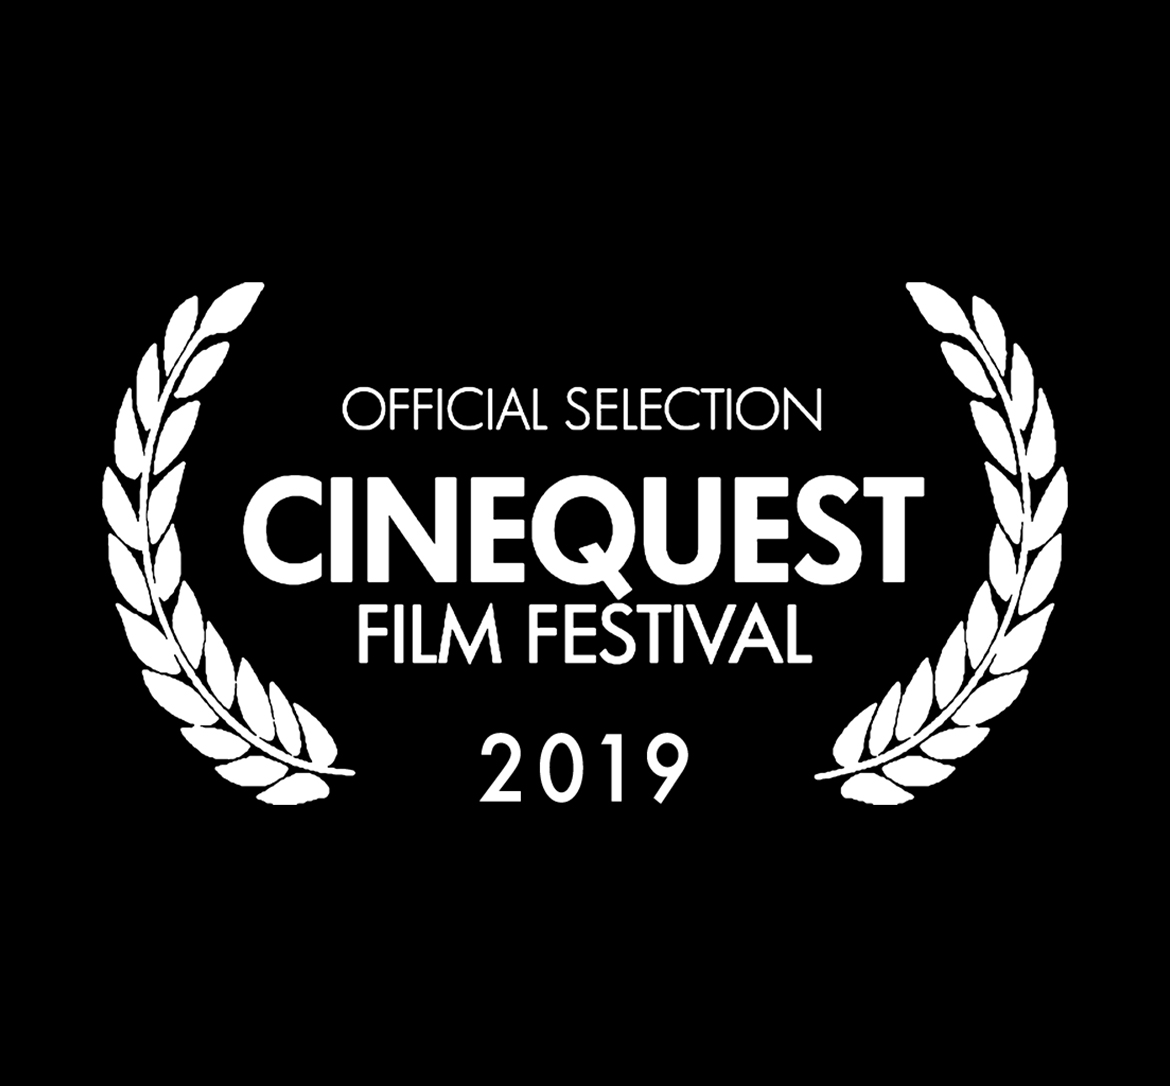 Cinequest Film Festival